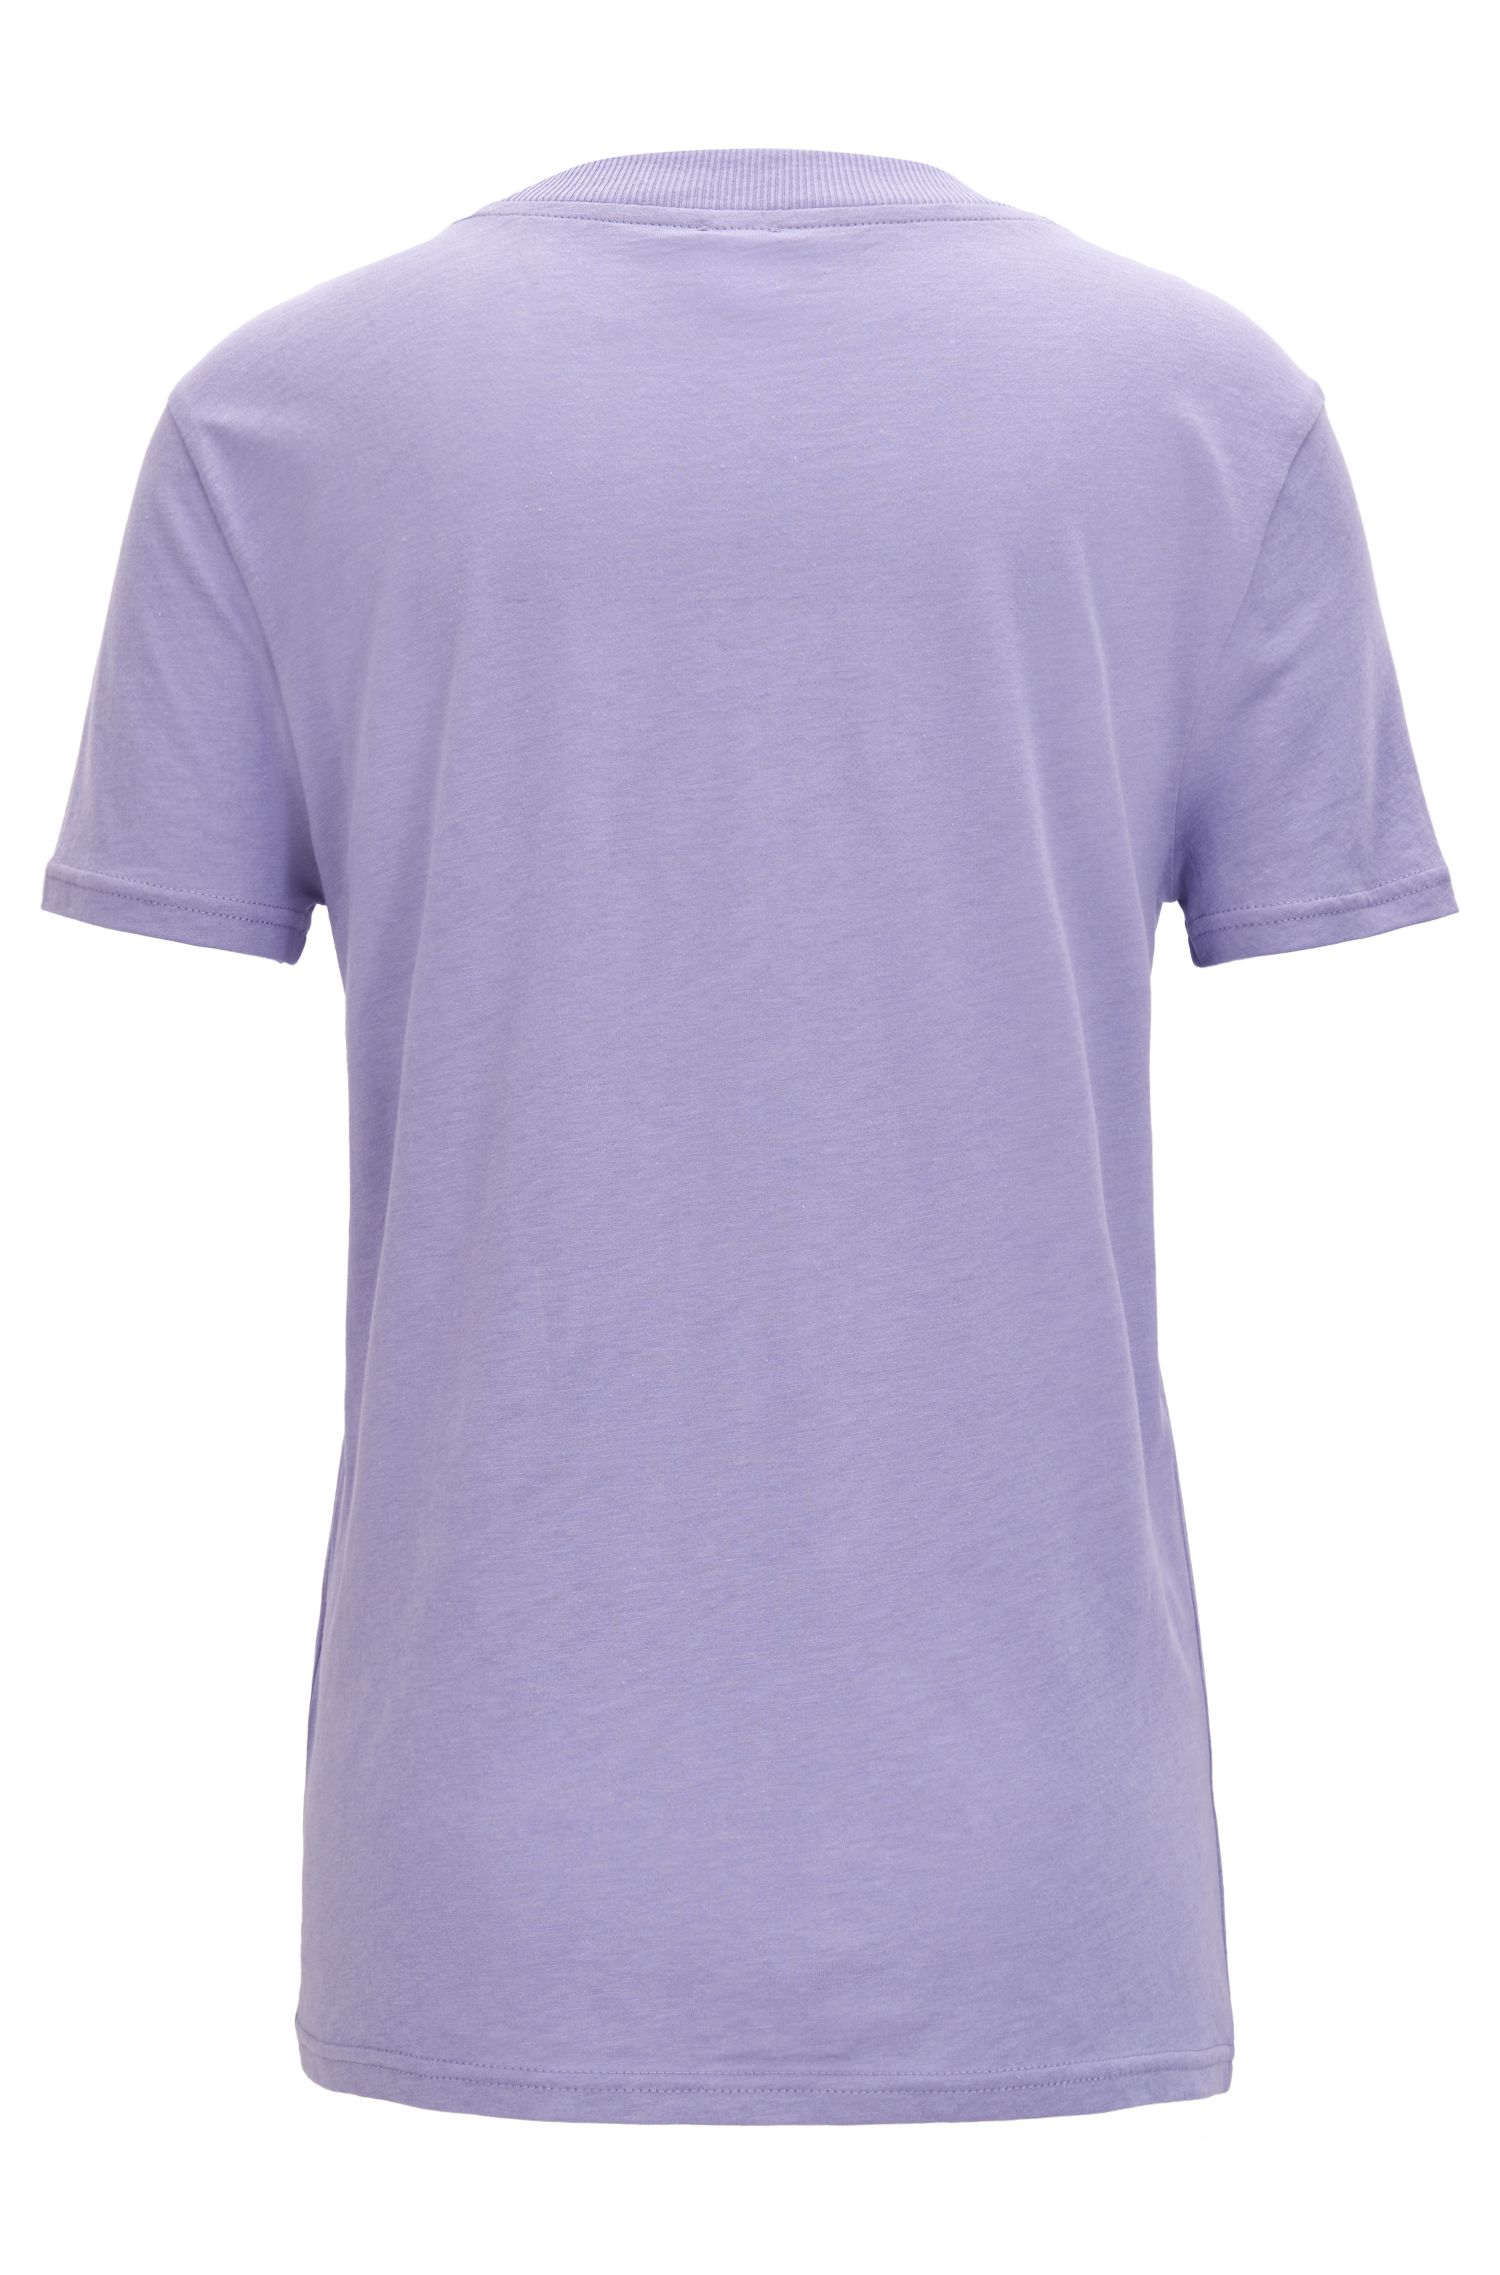 Oversized-fit cotton-blend T-shirt with feature neckline